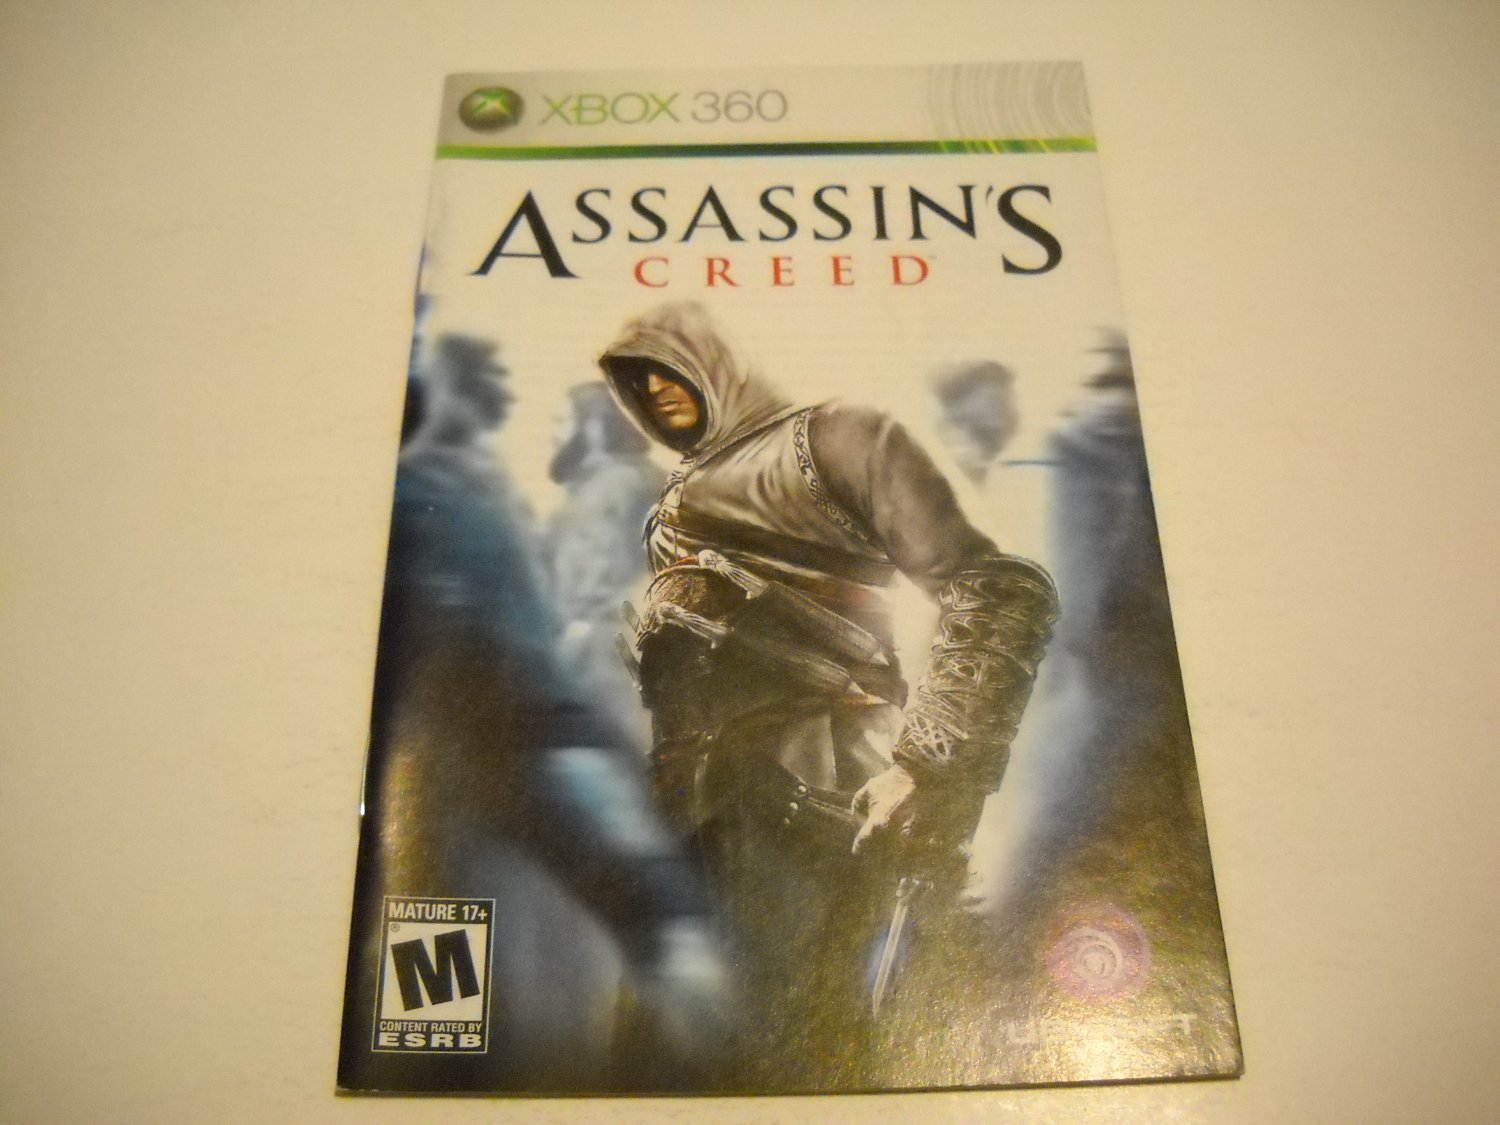 Manual ONLY ~  for Assassin's Creed   - Xbox 360 Instruction Booklet